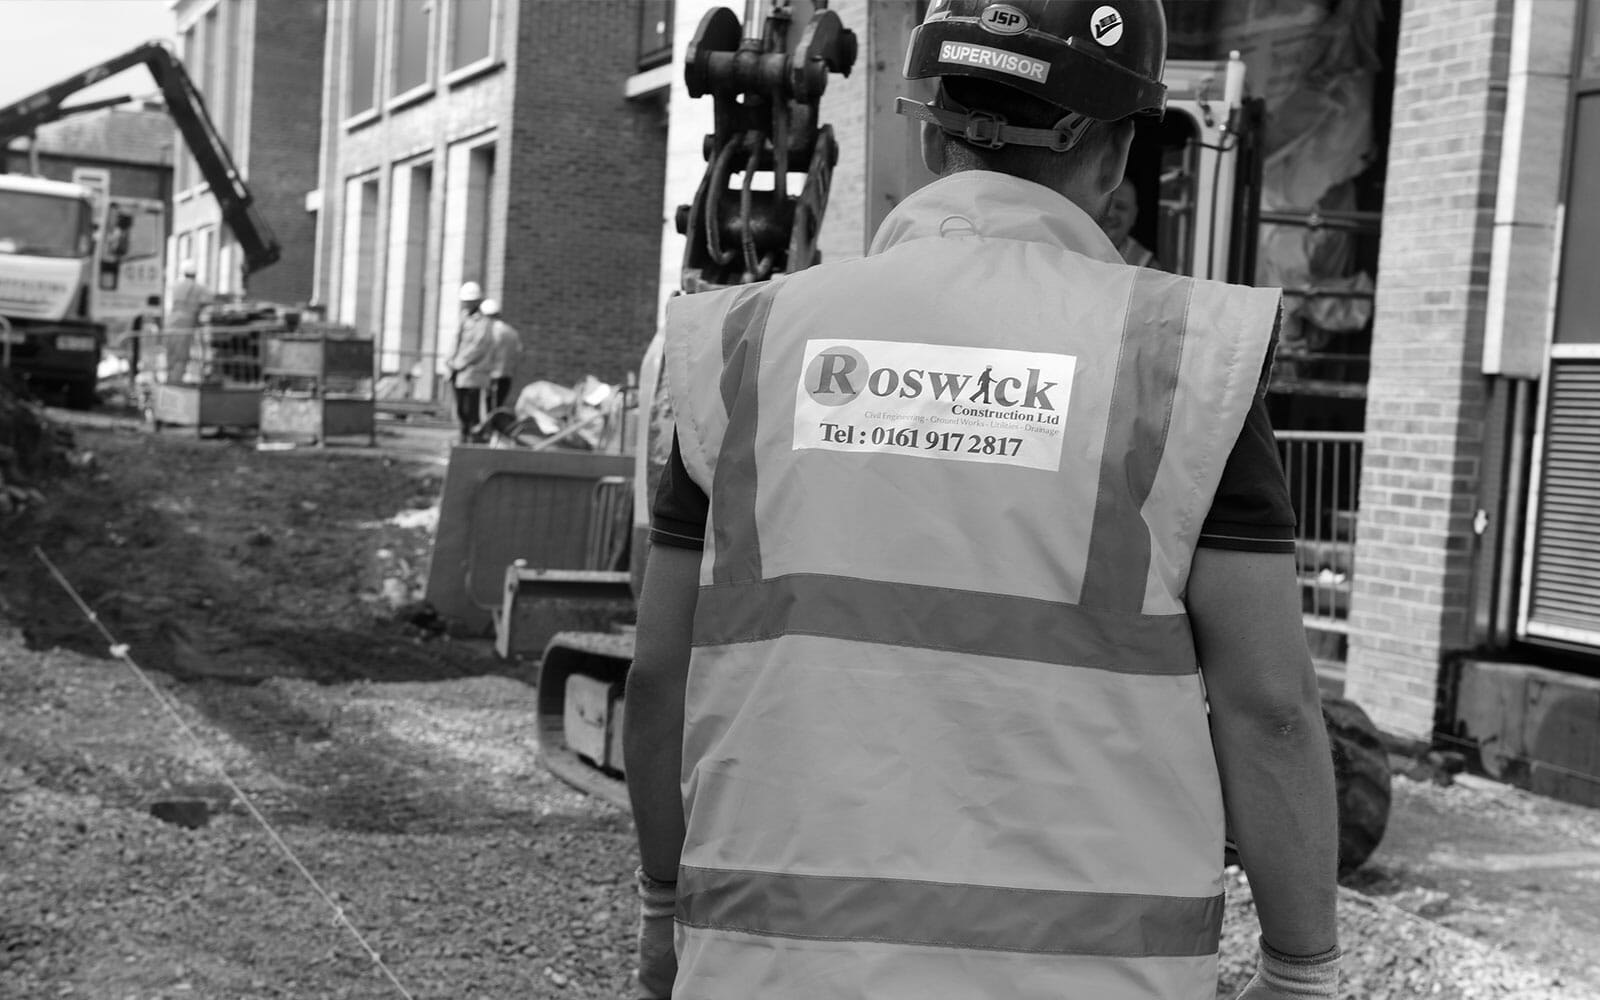 About Roswick Ltd